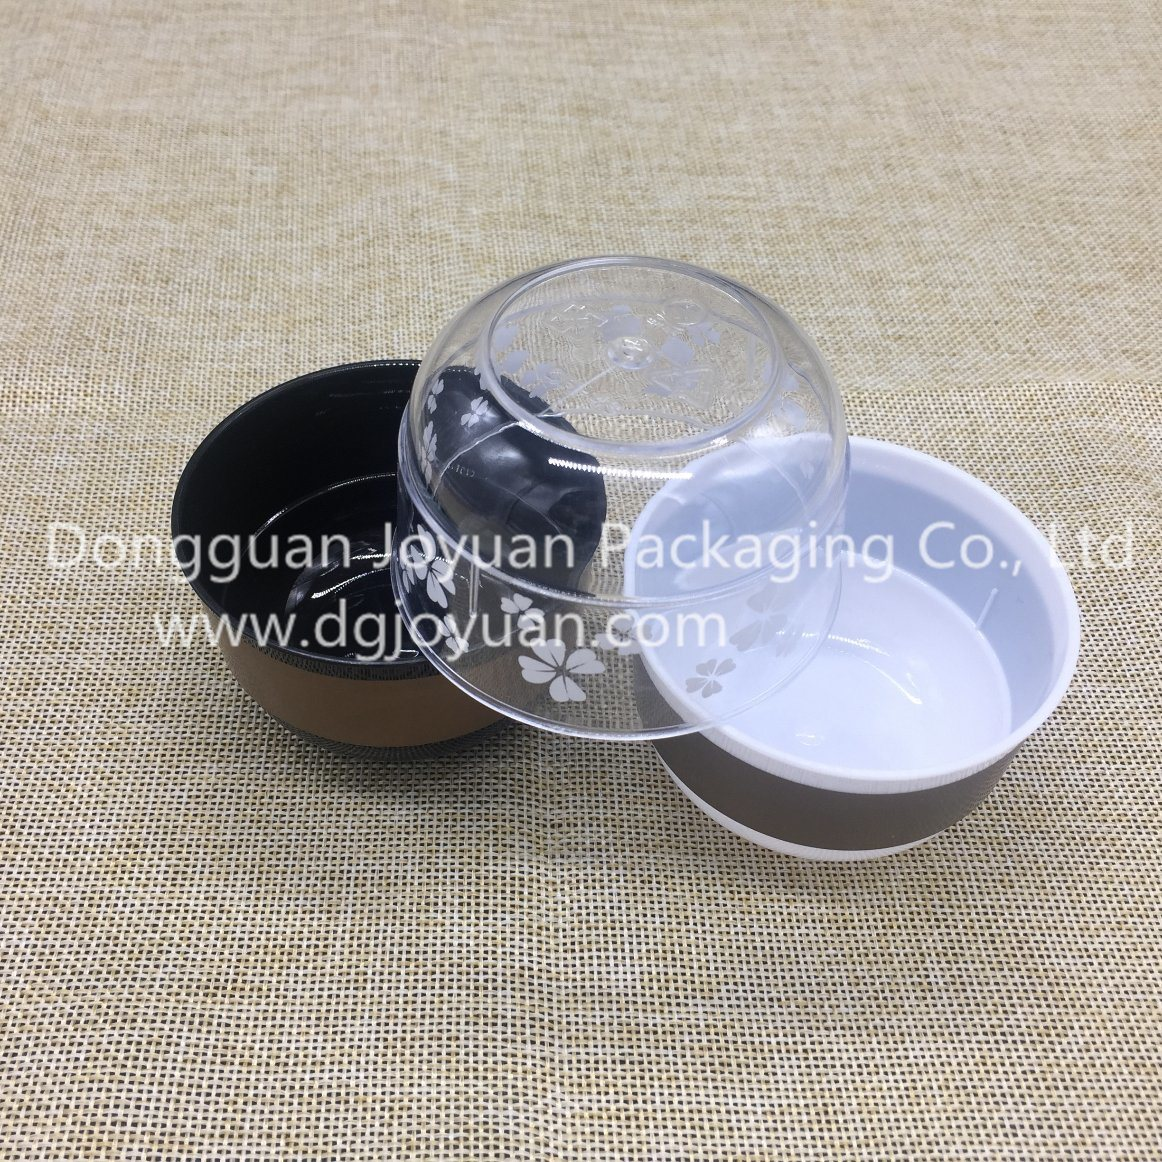 Plastic Cup Bowl Shape Cup for Mousse, Yogurt